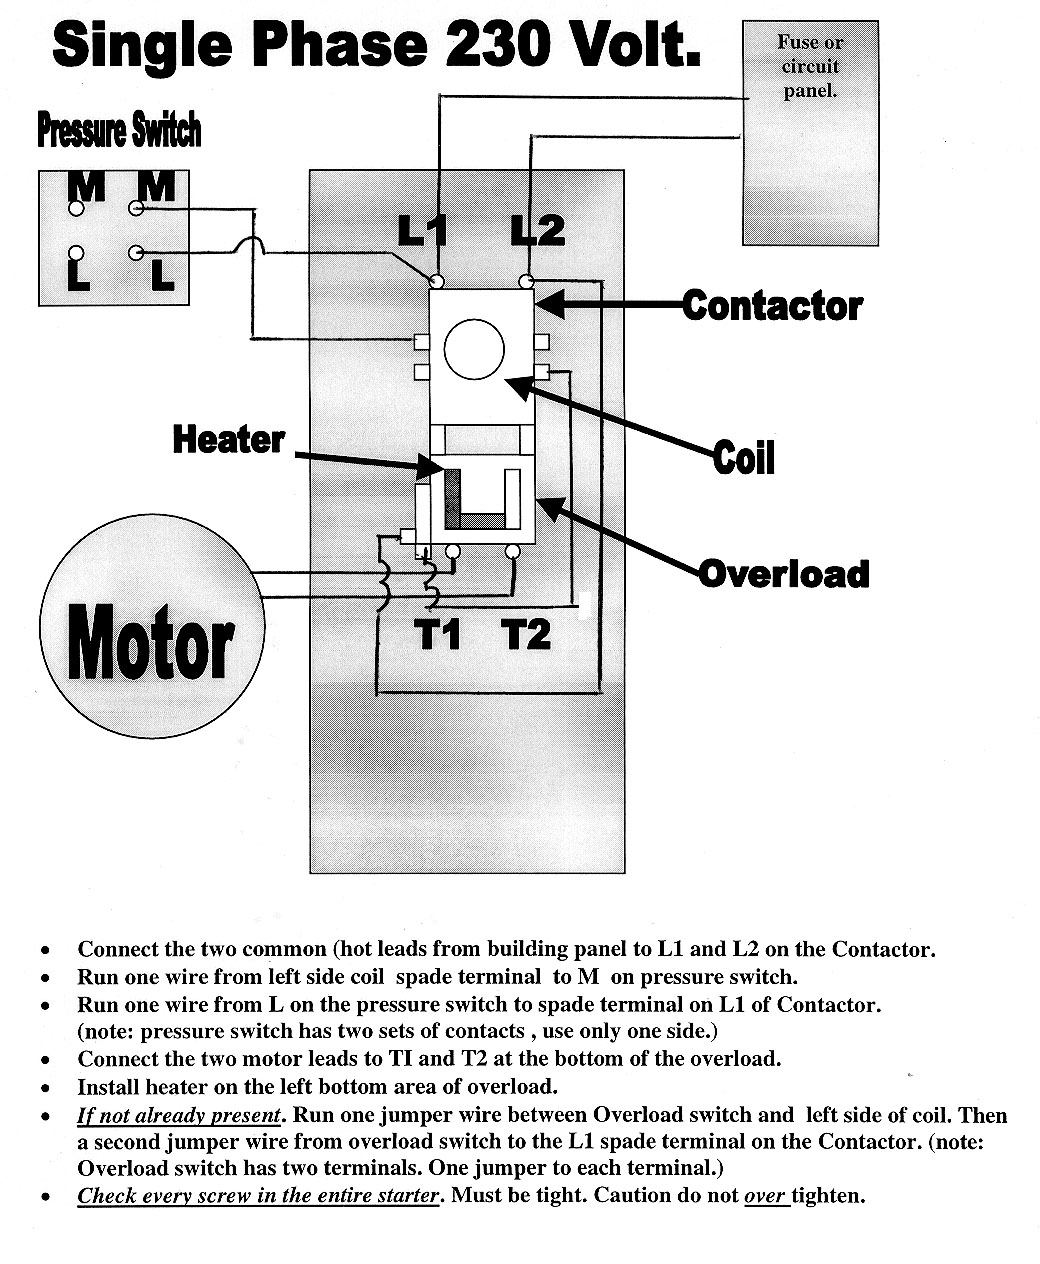 square d starters single phase wiring diagram pdf click here to view print single phase wiring diagrams